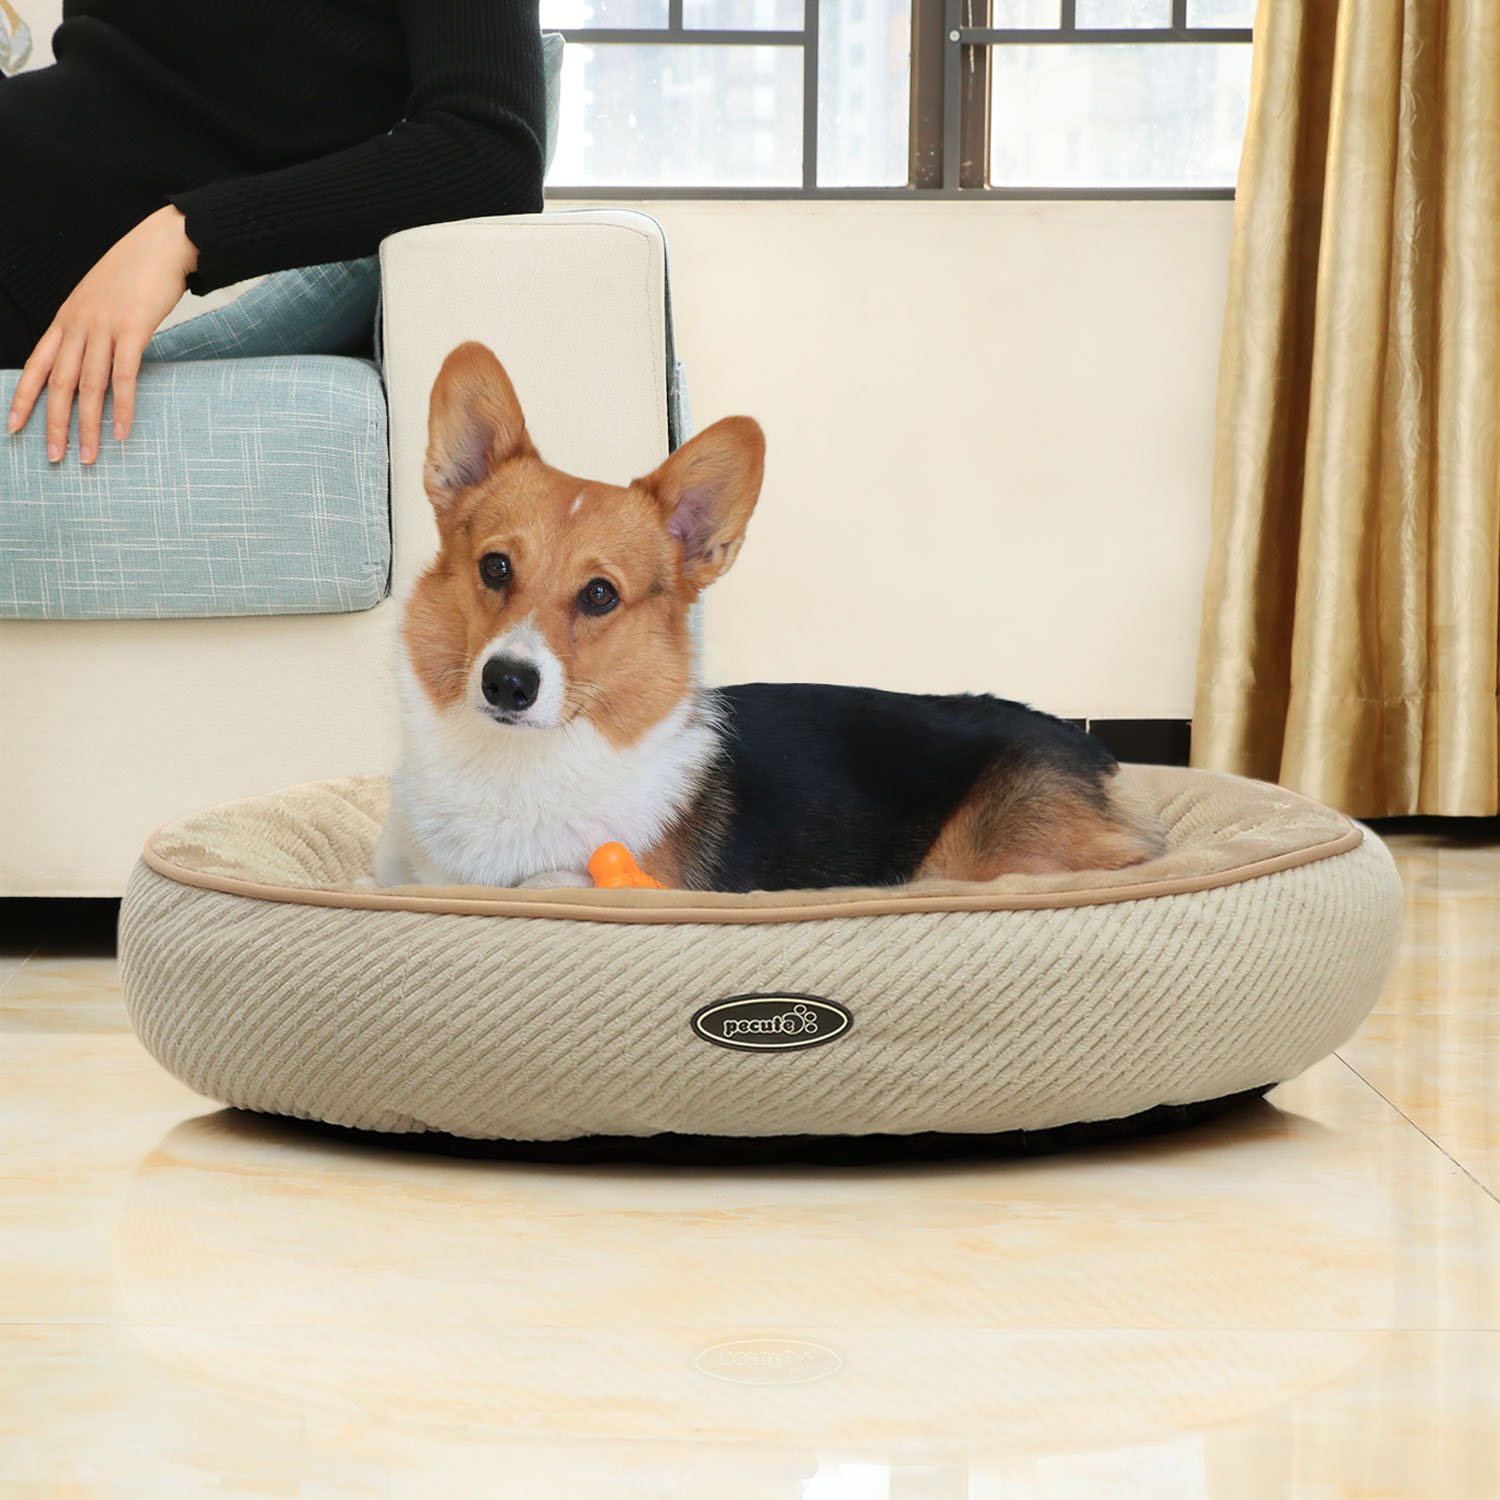 Dog Bed Cat Pet Soft Round Bed Machine Washable Coral Fleece Interior for Small Pet